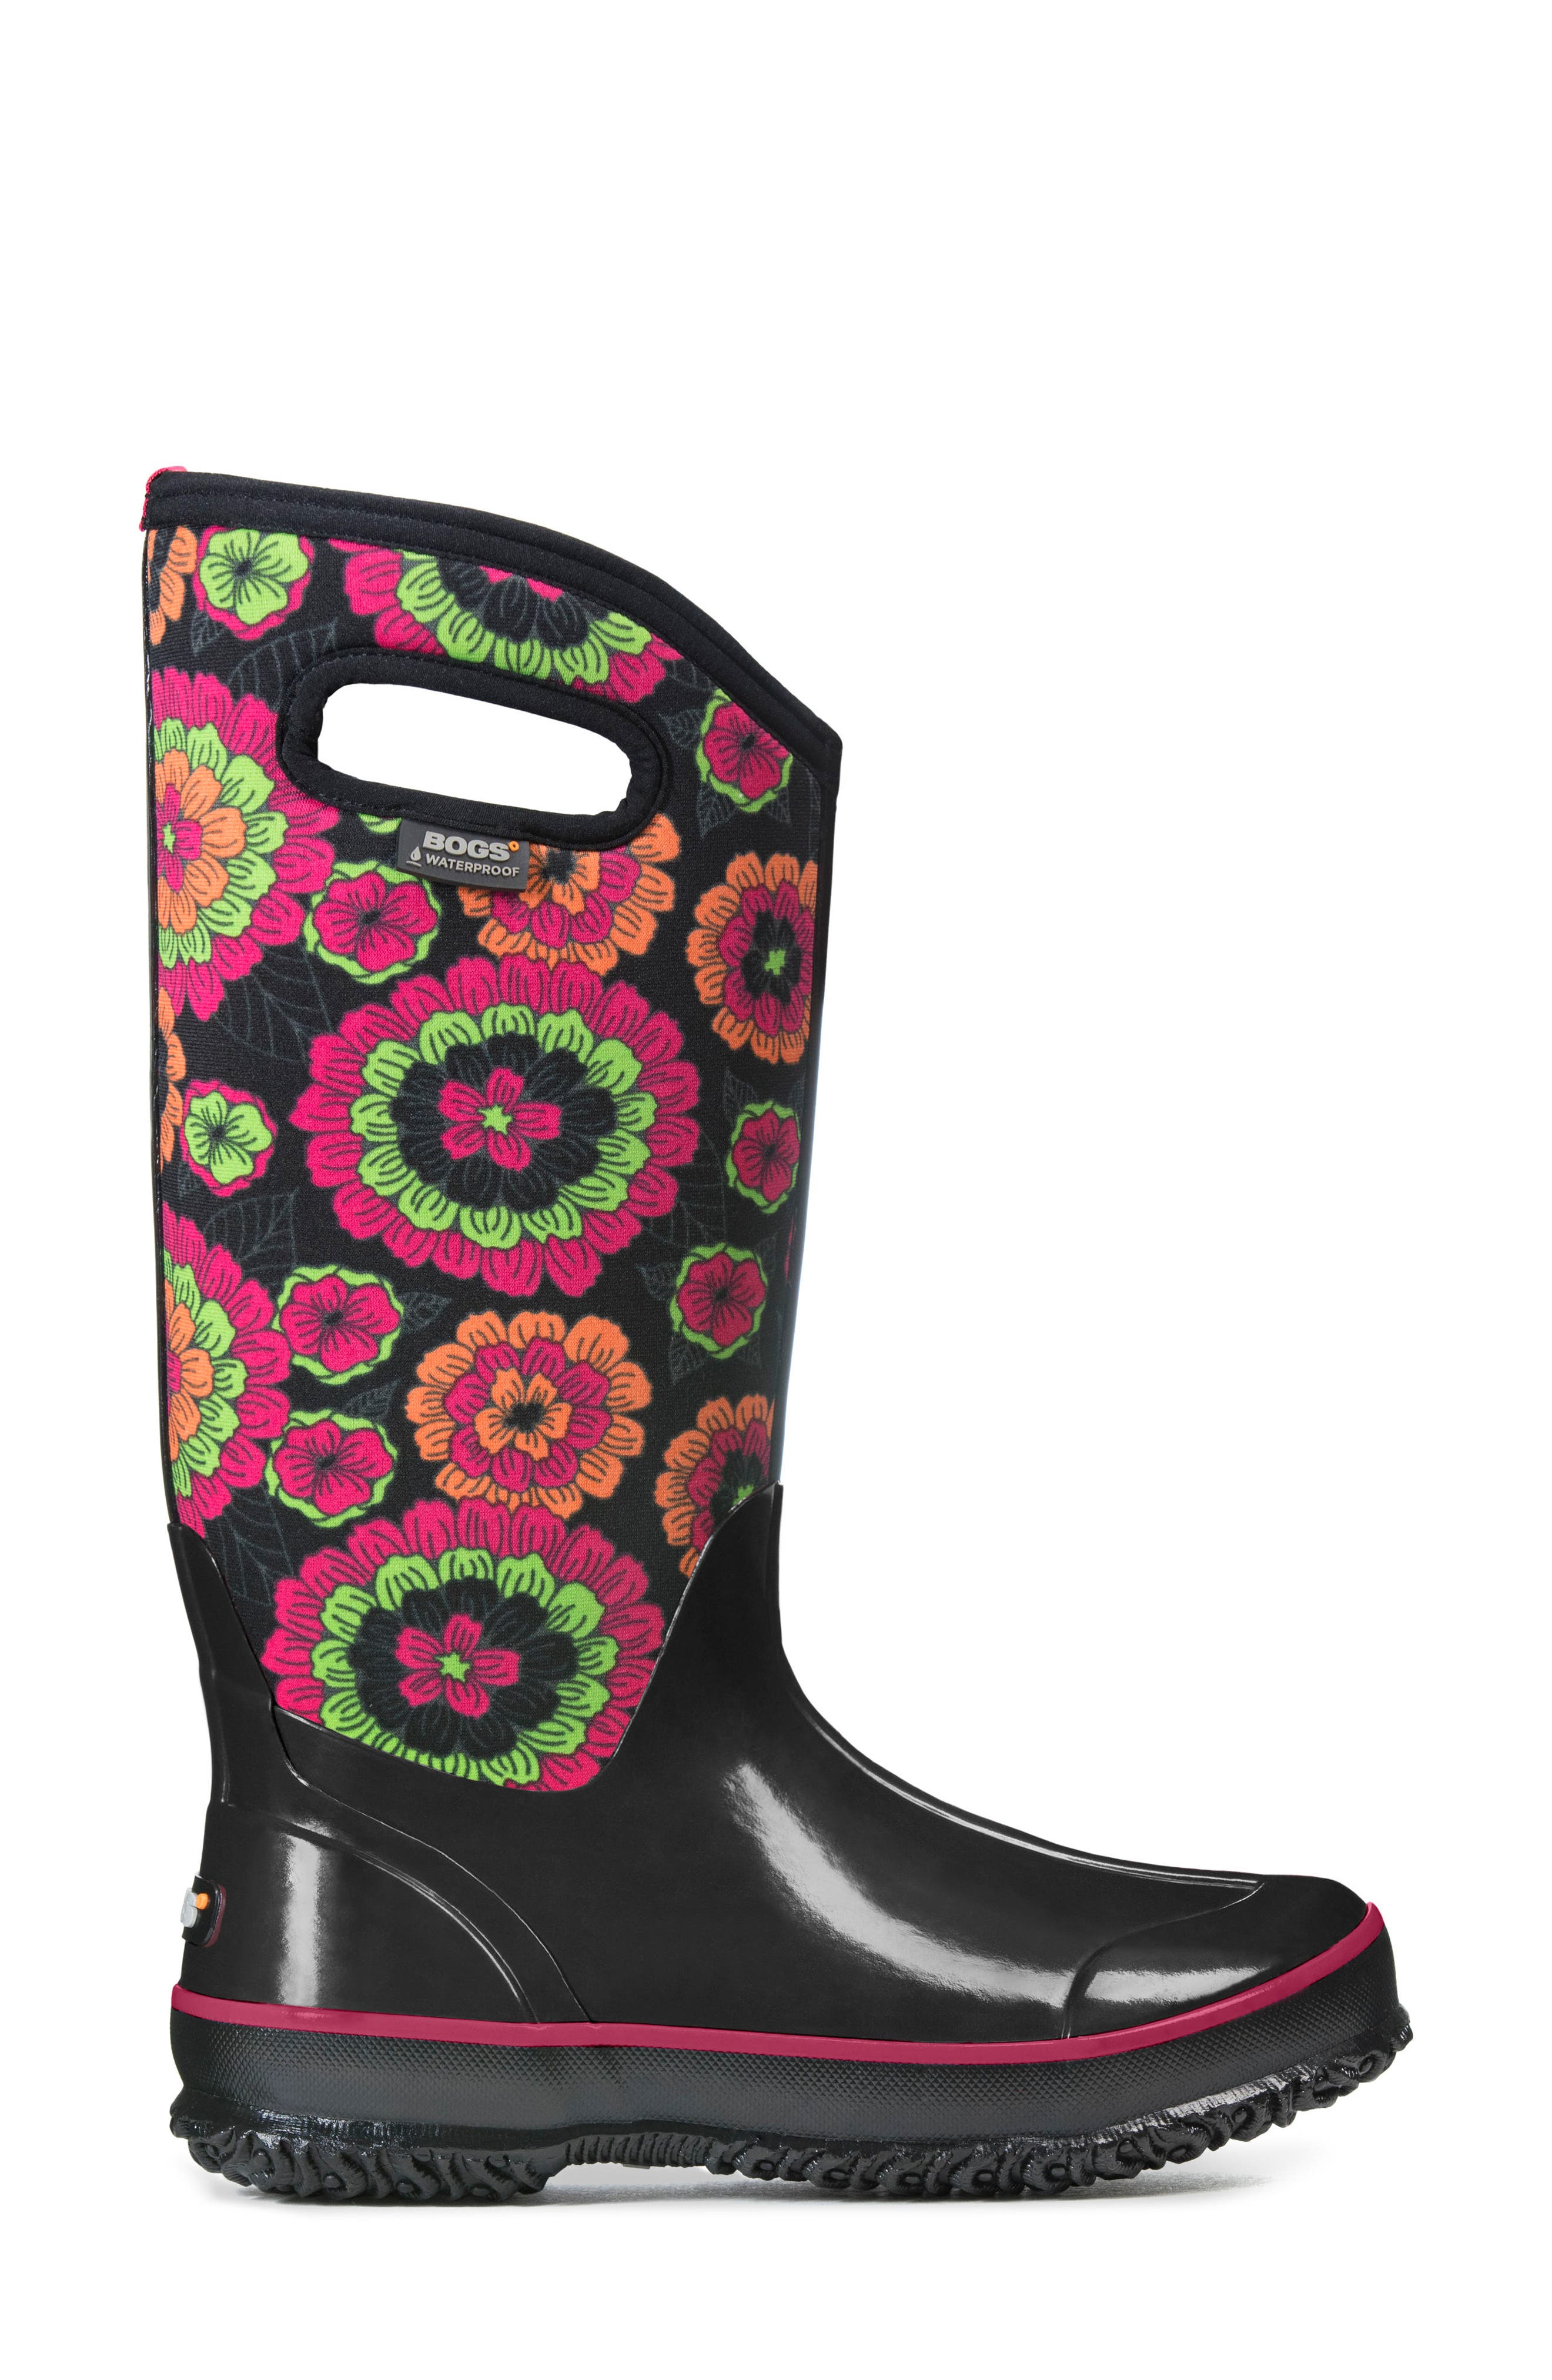 Classic Pansies Waterproof Insulated Boot,                             Alternate thumbnail 3, color,                             010